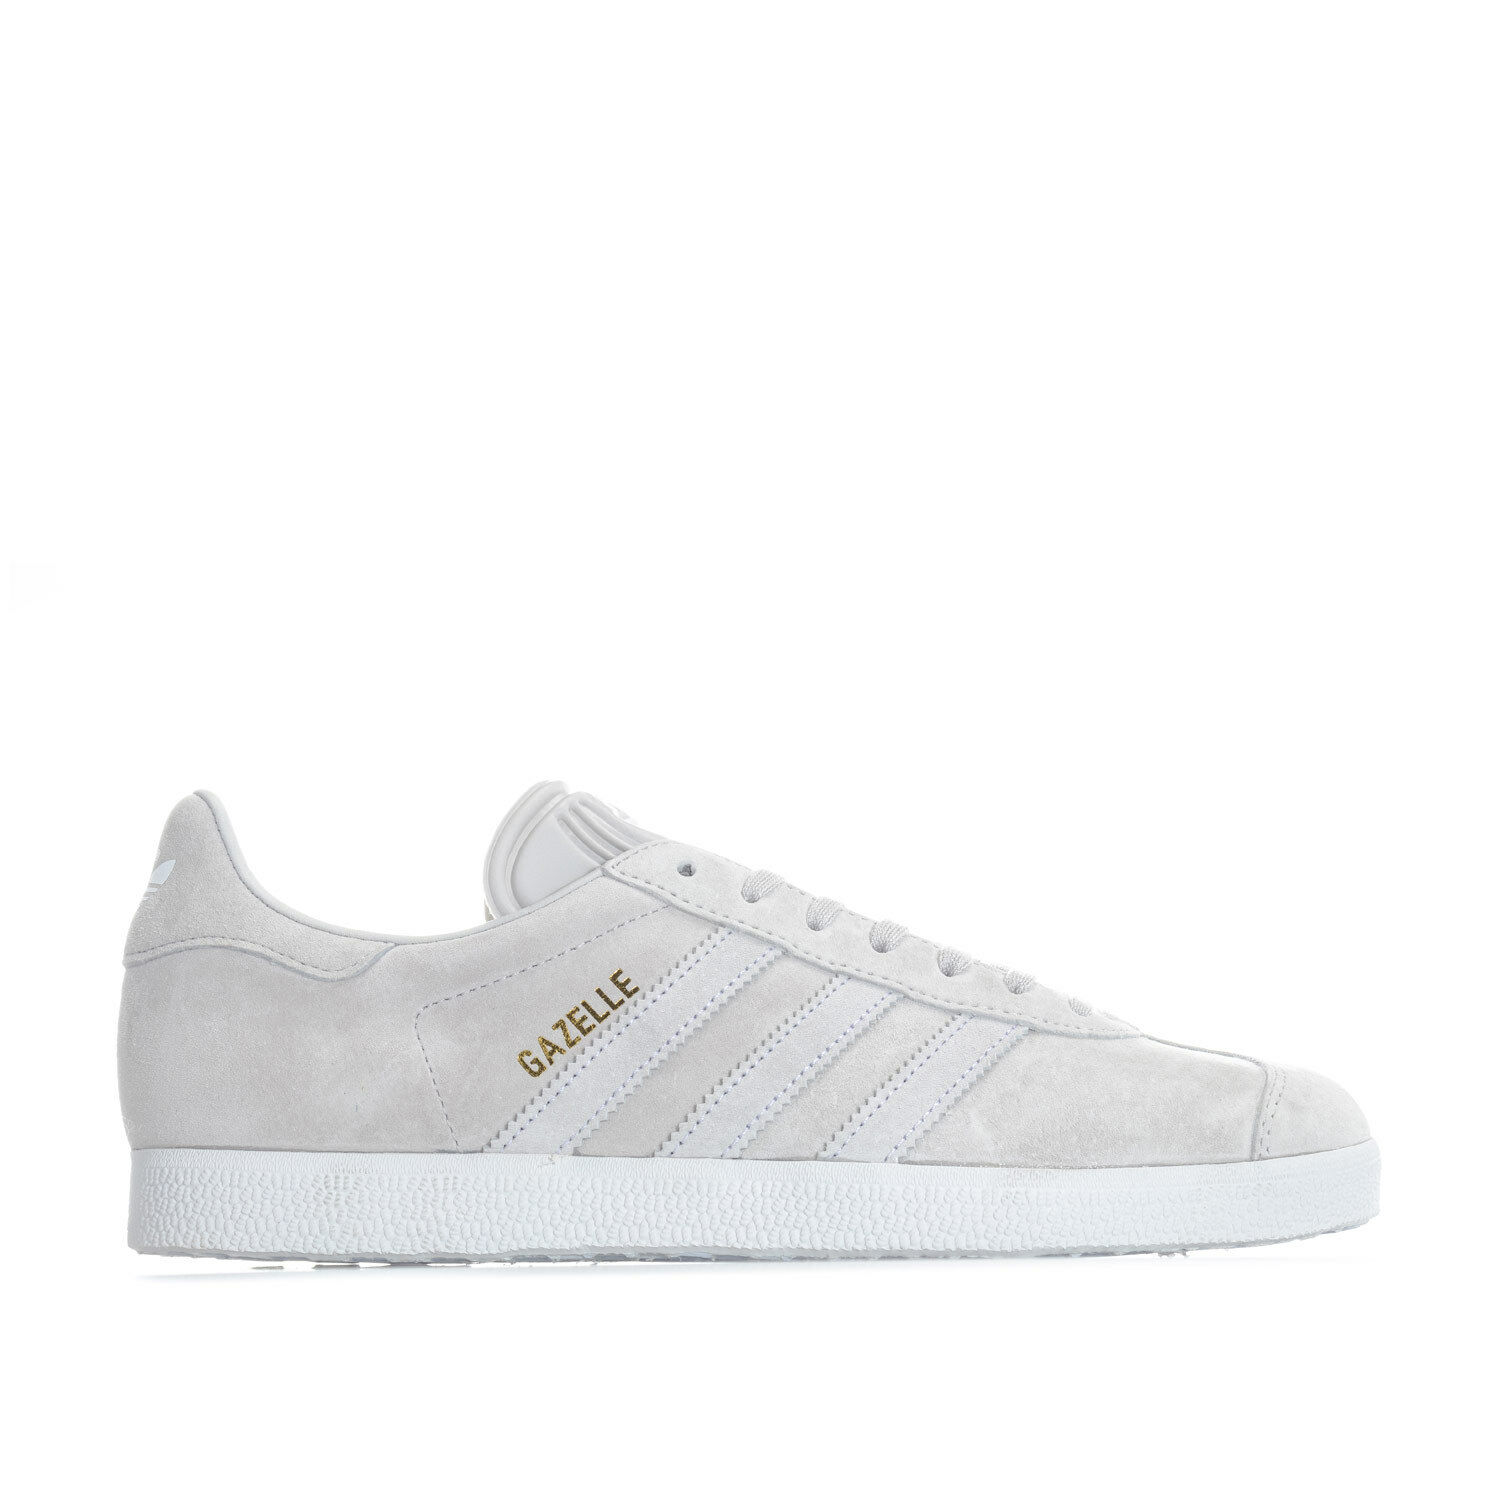 Womens adidas Originals in Womens Gazelle Trainers in Originals Light Grey - UK 4 ea2f46